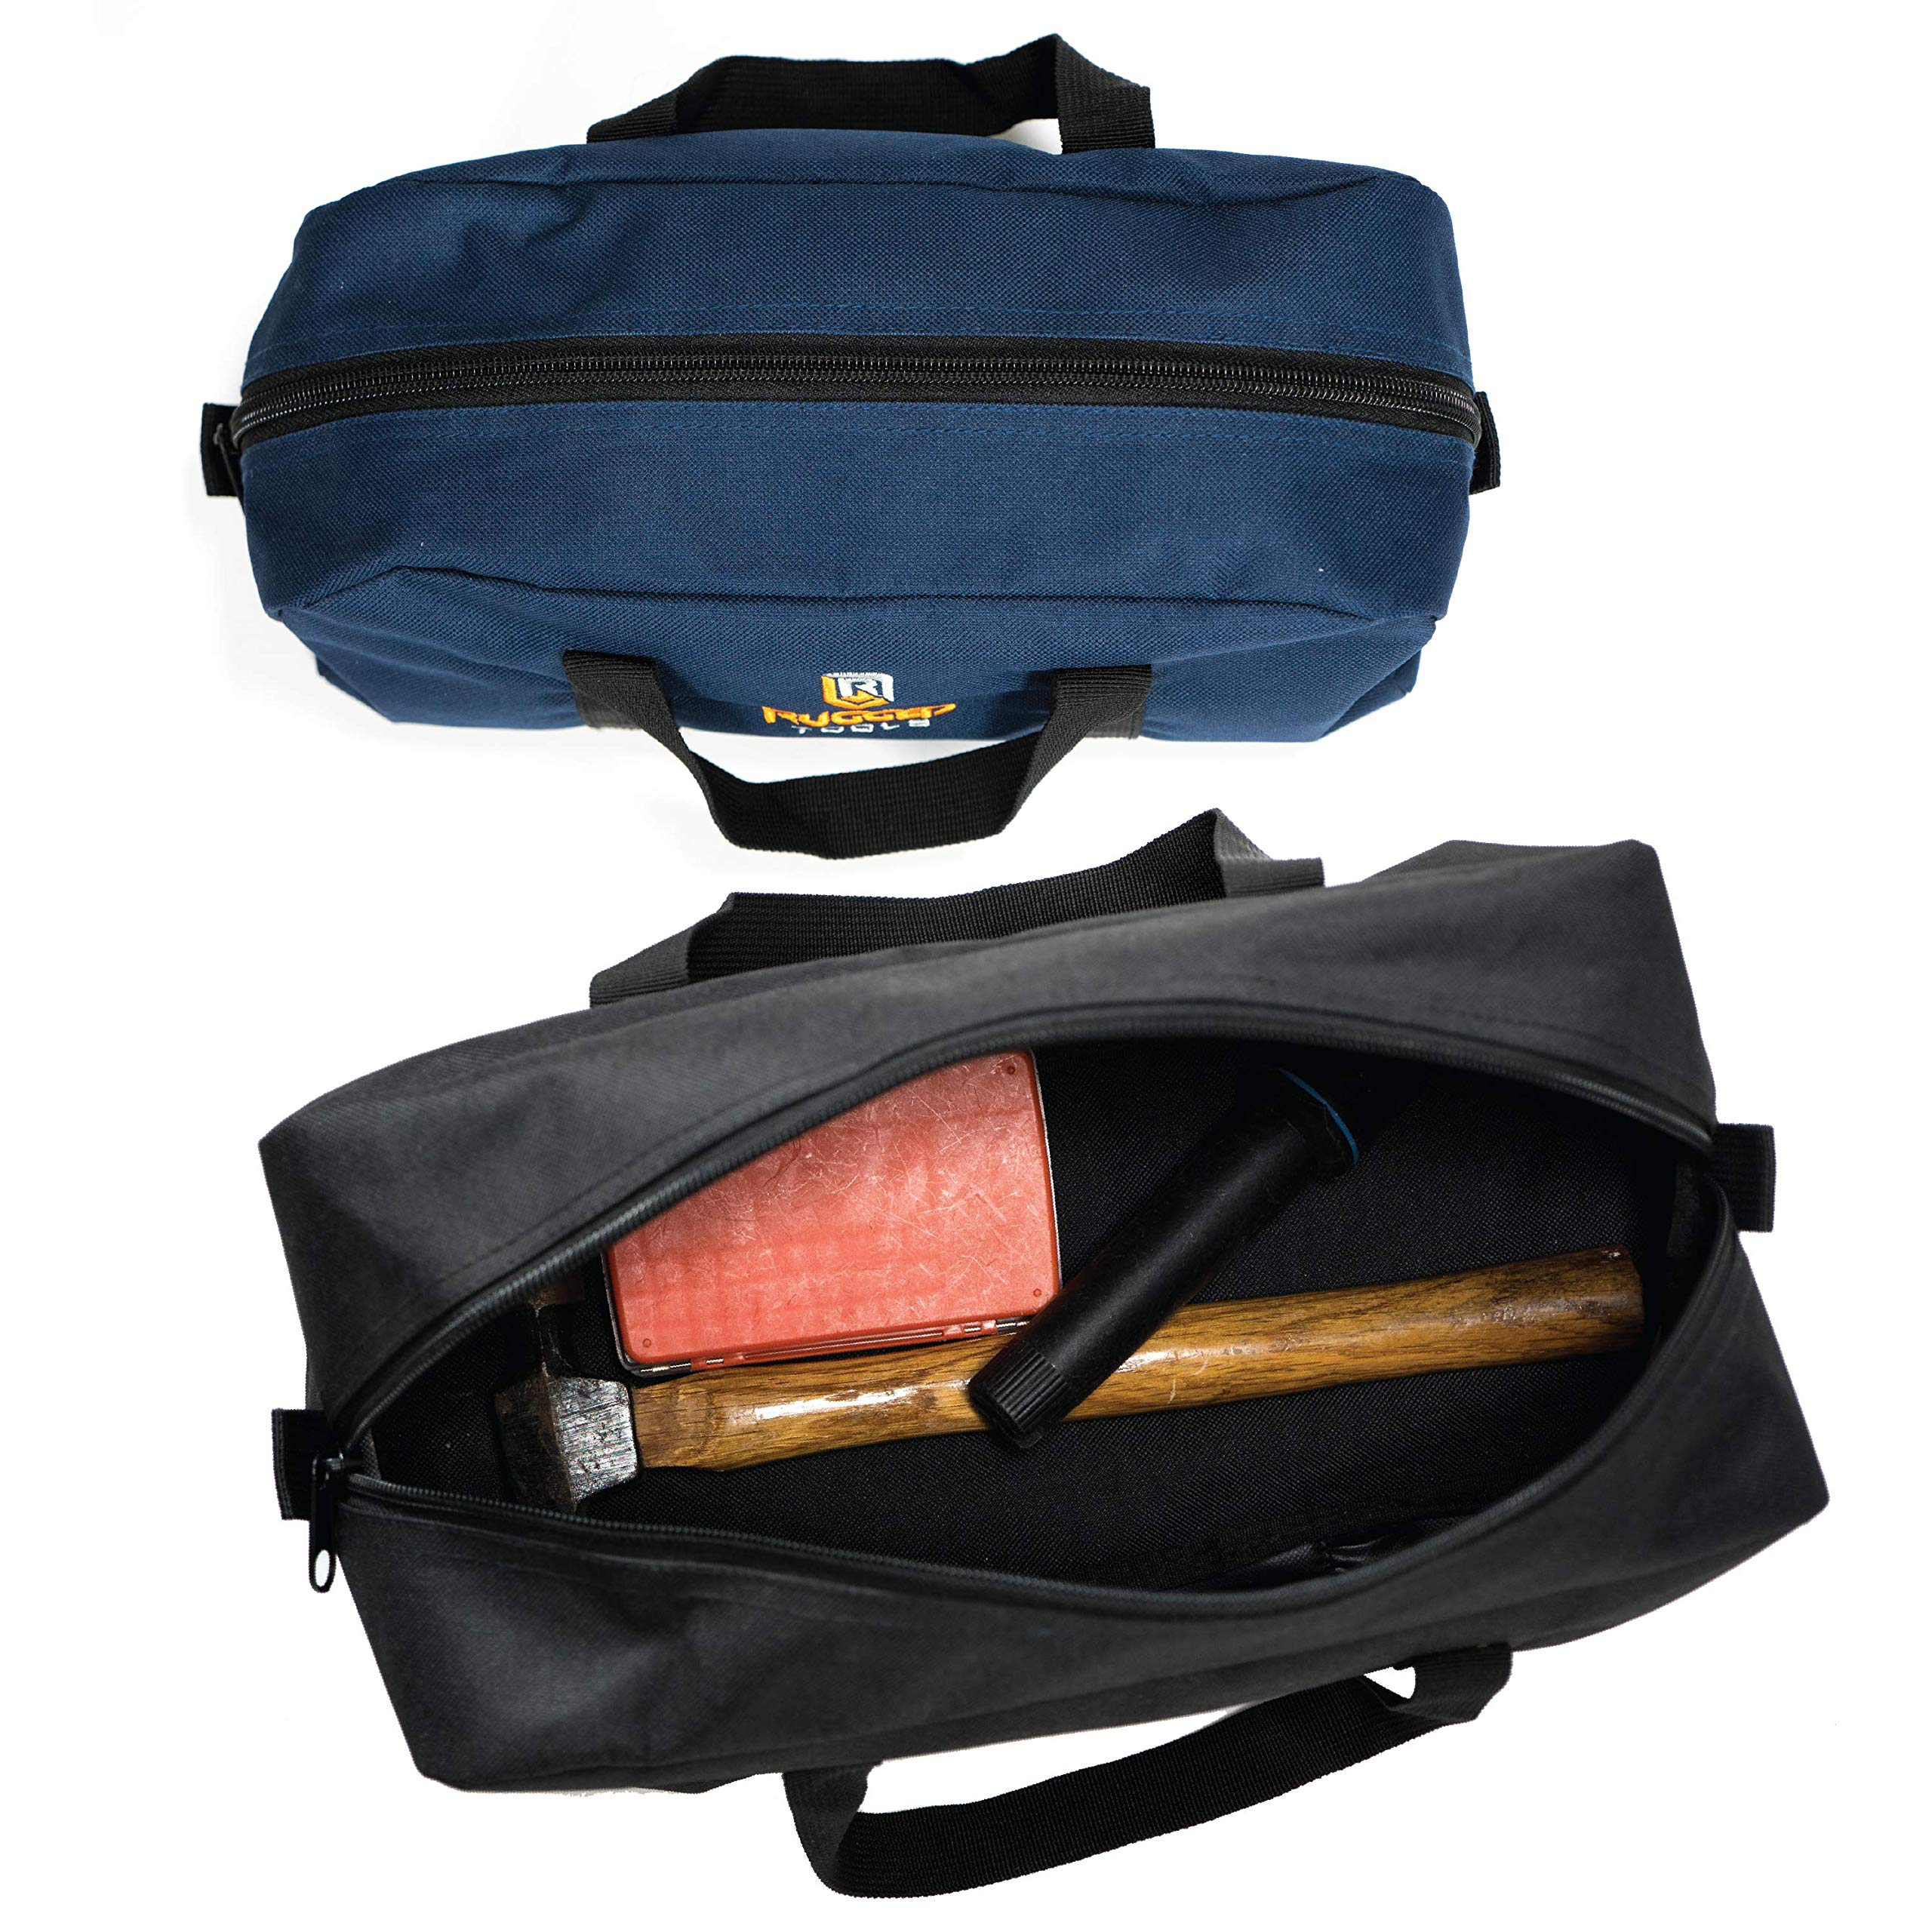 Rugged Tools Tool Bag Combo - Includes 1 Small & 1 Medium Toolbag - Organizer Tote Bags for Electrician, Plumbing, Gardening, HVAC & More by Rugged Tools (Image #6)